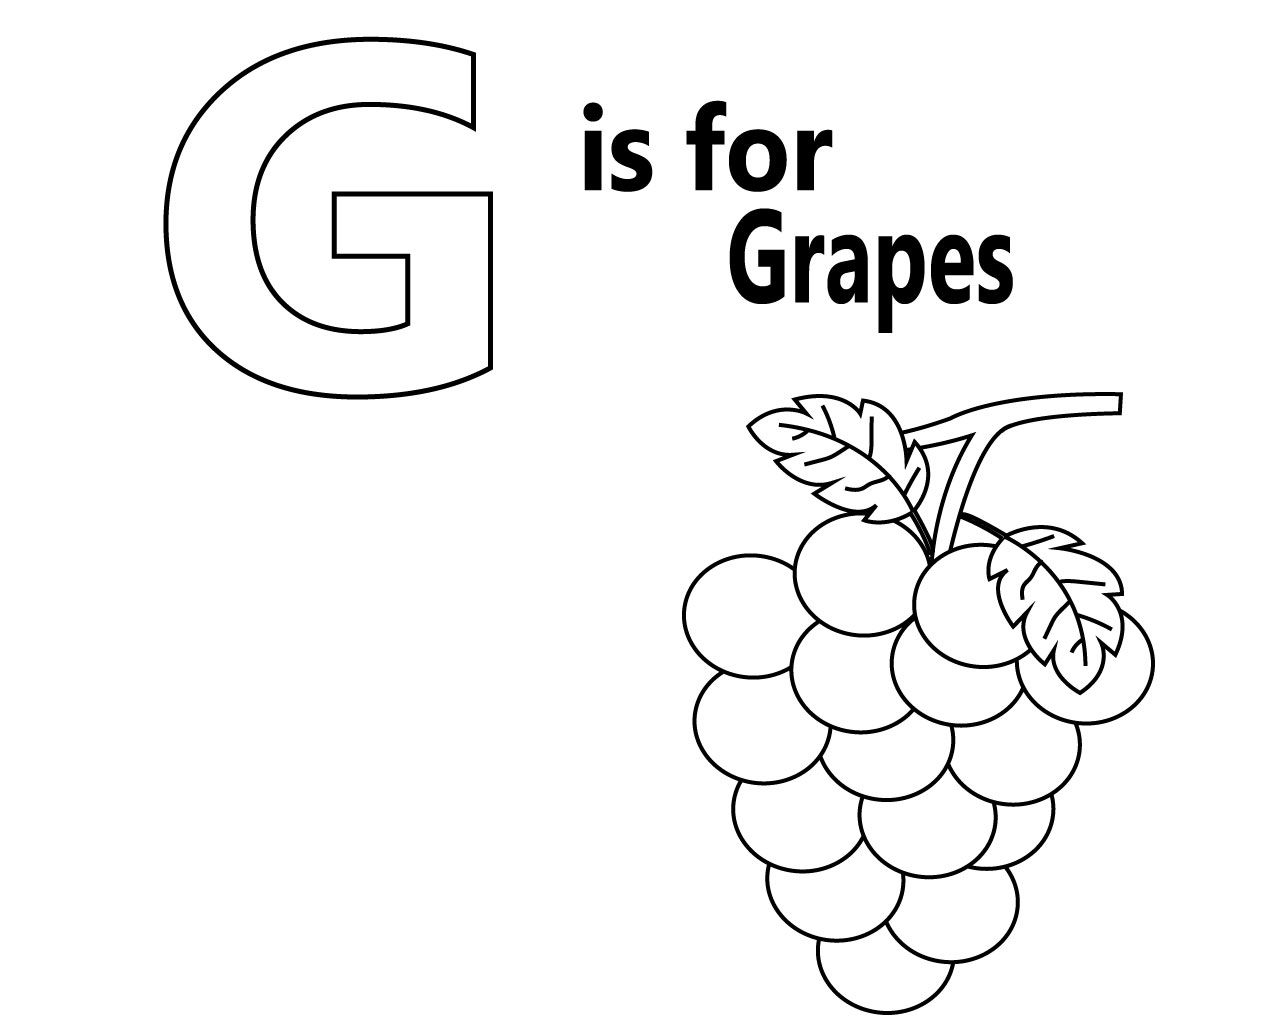 g for grapes coloring page g is for grapes coloring pages color luna coloring g grapes page for